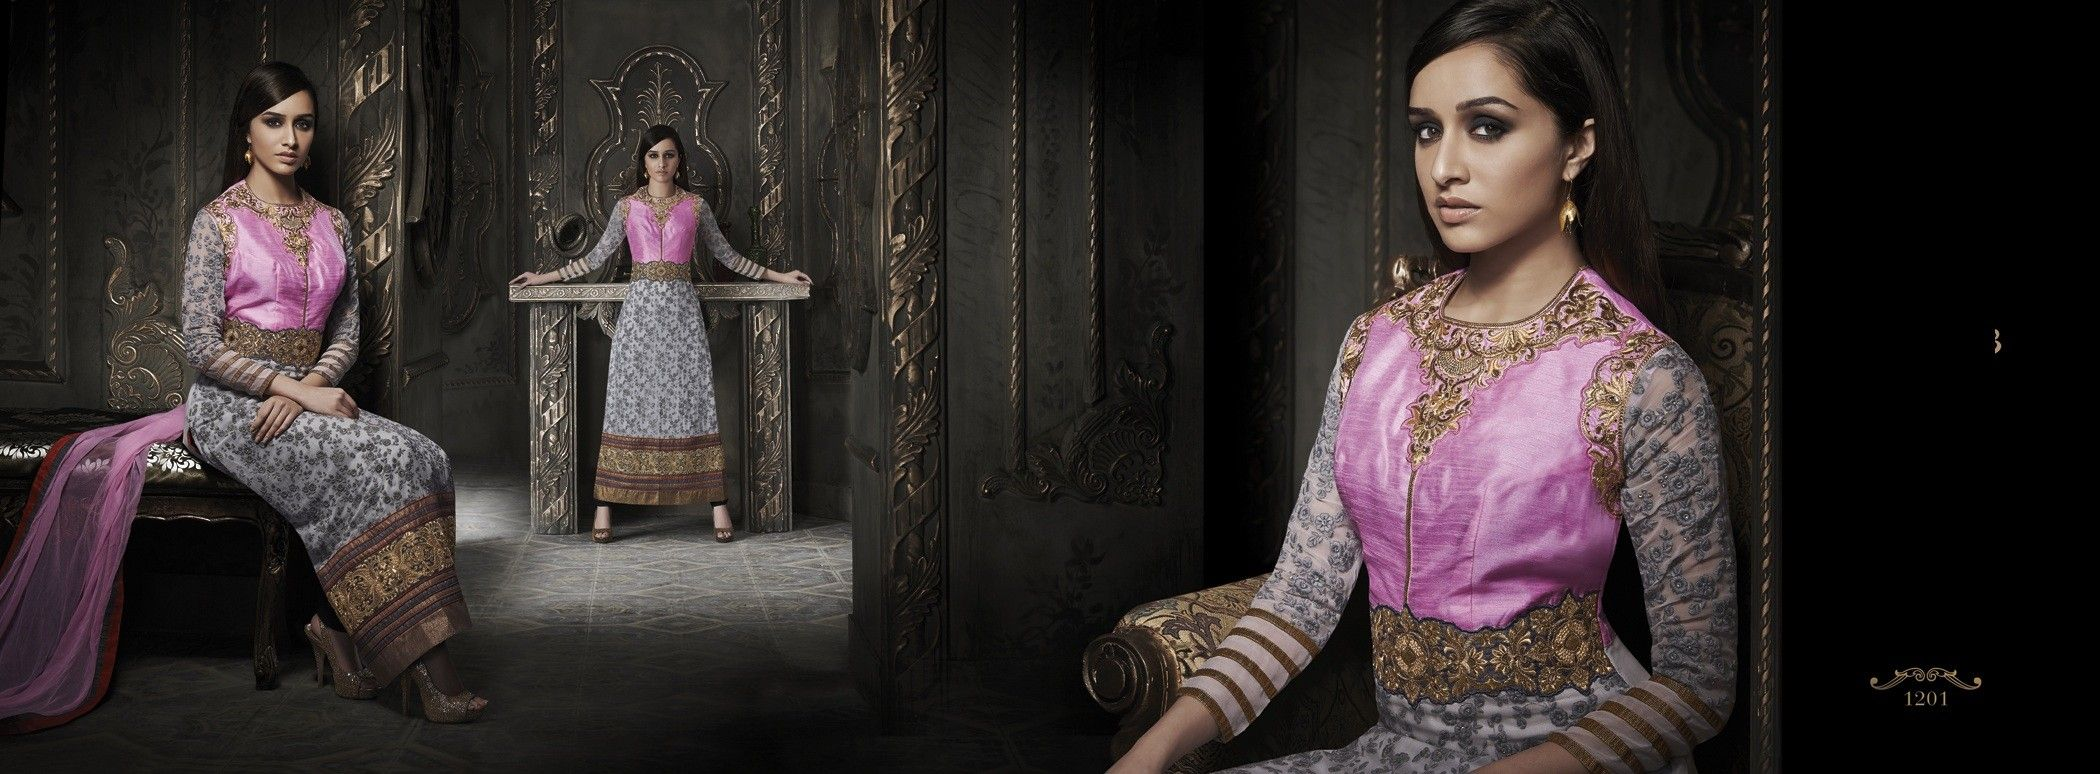 shraddha kapoor In White & Pink Suit, designer collection 2015, latest indian women fashion